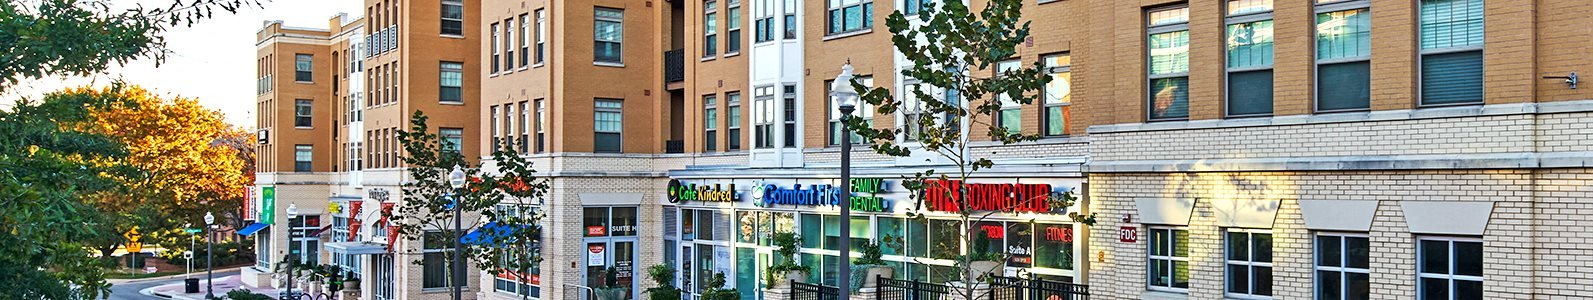 Northgate is centrally located to Arlington, Washington D.C., and features shops and services on the ground floor